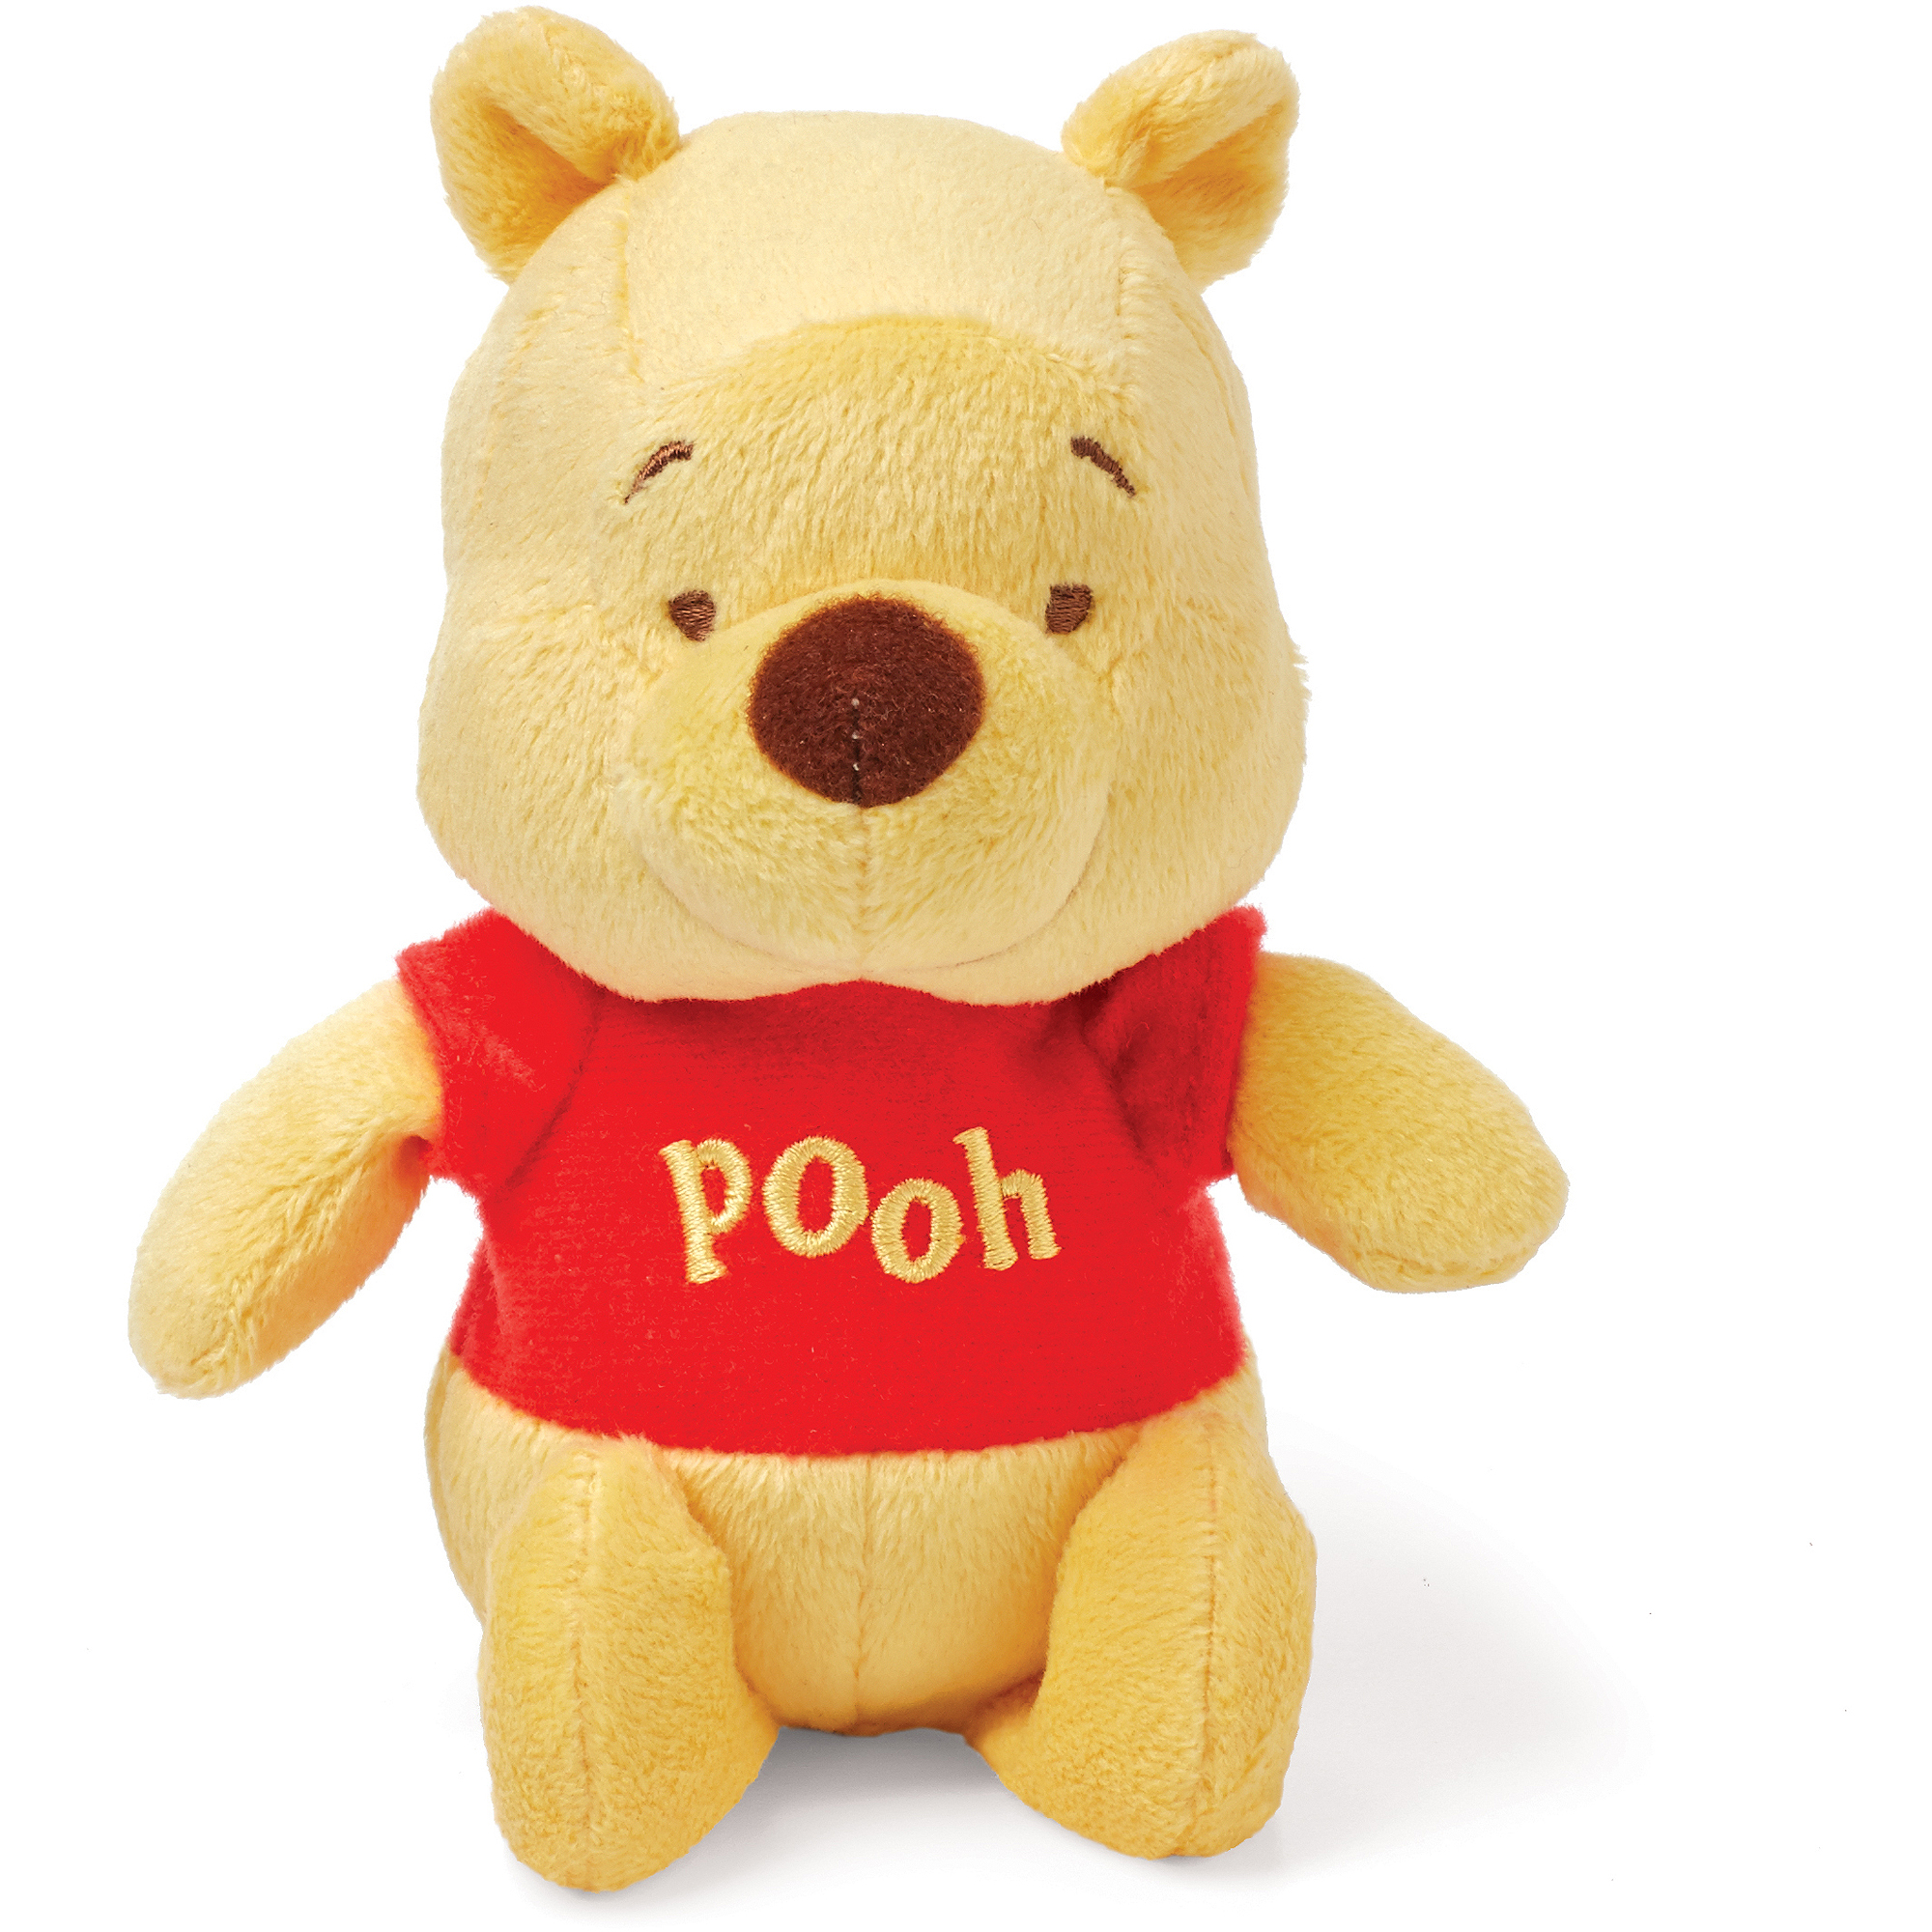 Kids Preferred Disney Baby Mini Jingler, Winnie the Pooh